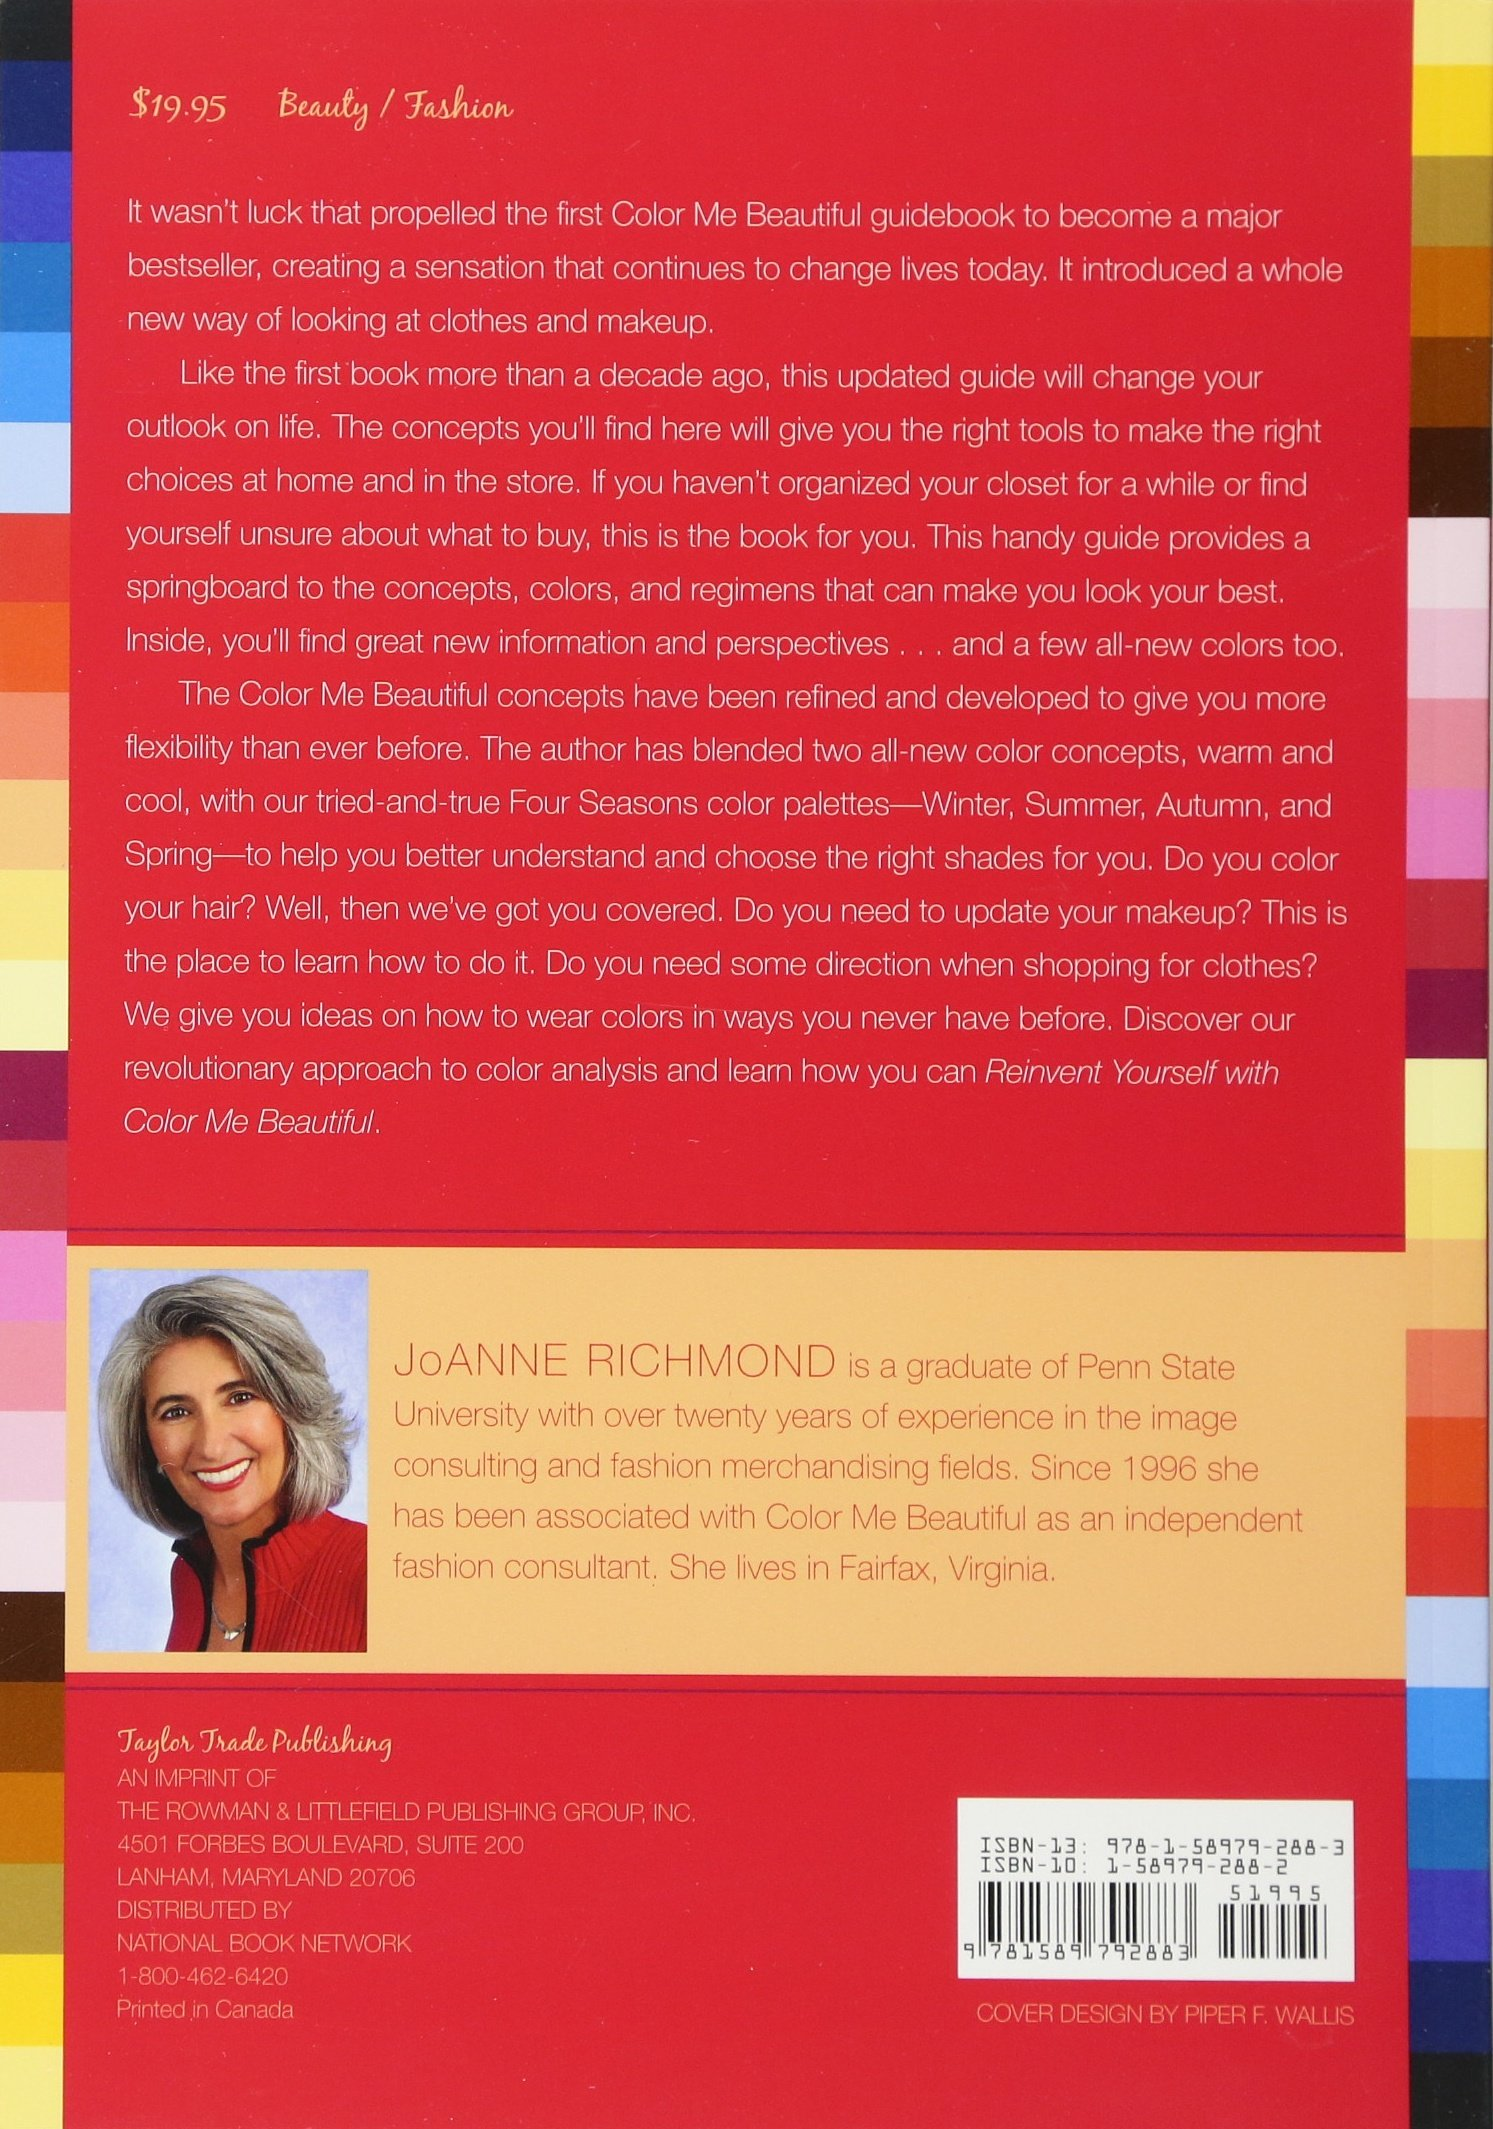 reinvent yourself with color me beautiful four seasons of color makeup and style joanne richmond 9781589792883 amazoncom books - Color Me Beautiful Book